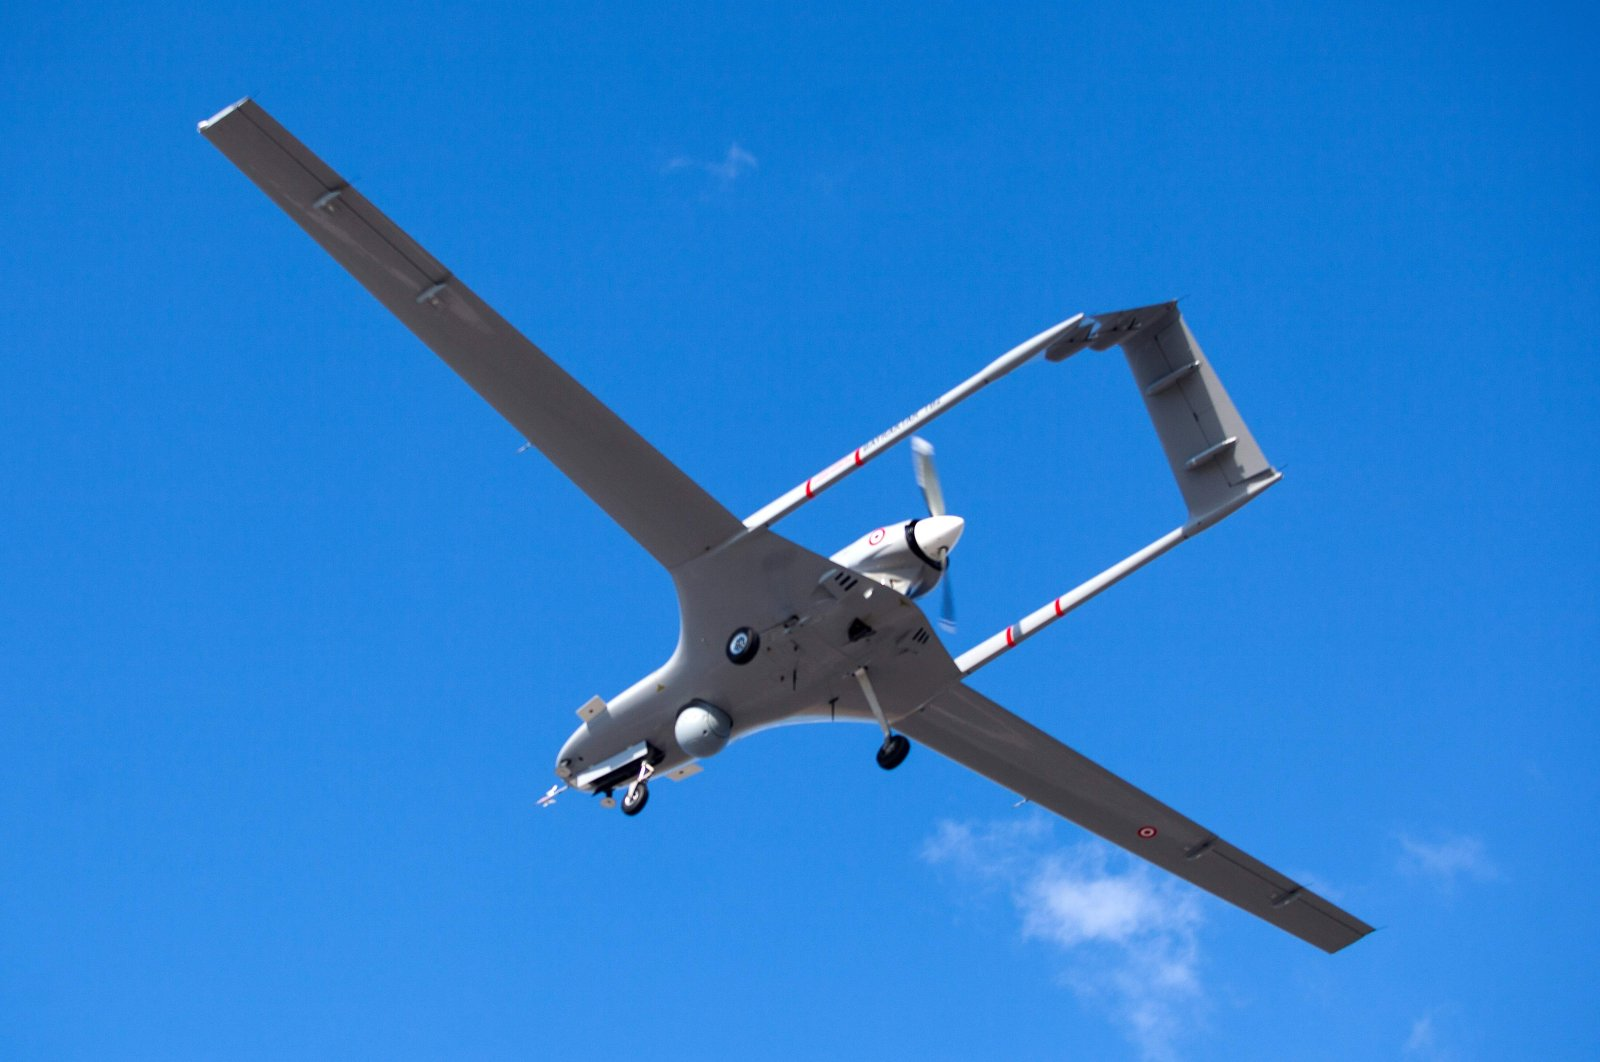 In this file photo taken on December 16, 2019, the Bayraktar TB2 drone flies at in the skies of Turkish Republic of Northern Cyprus (TRNC). (AFP Photo)